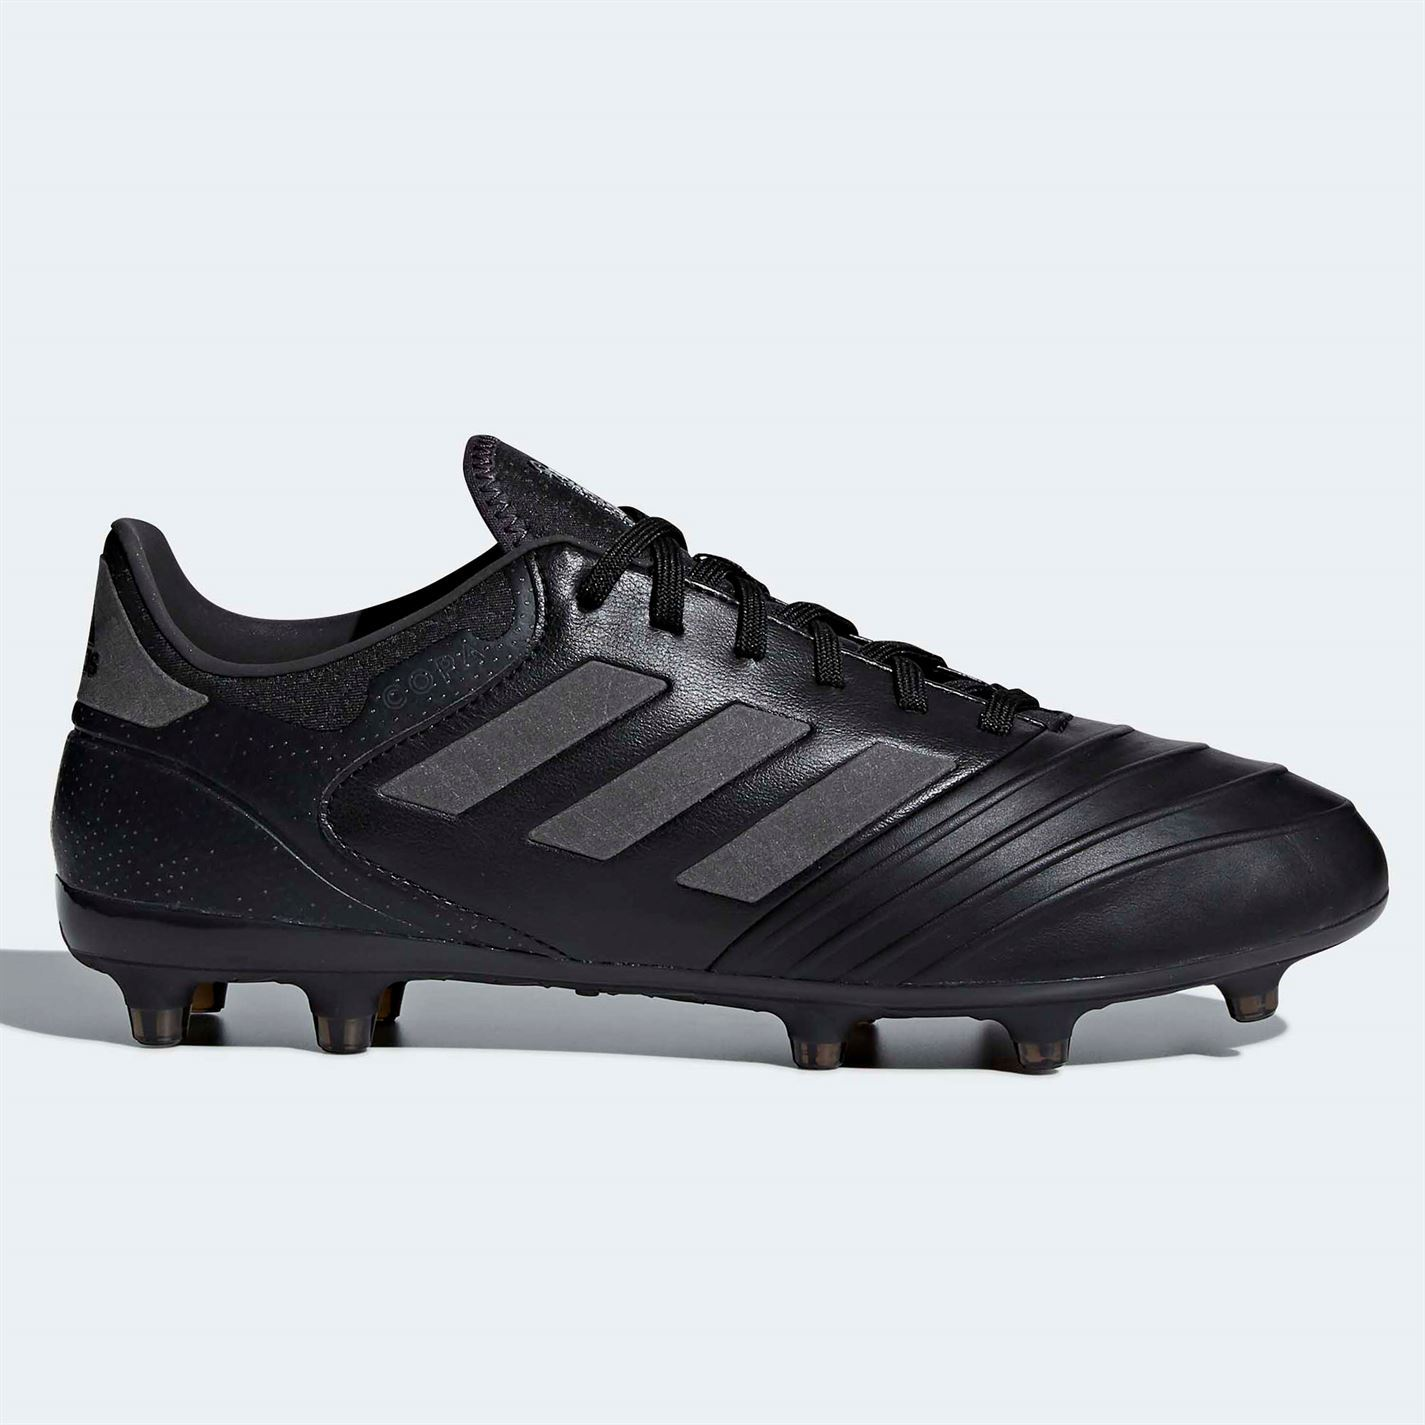 b8faff730 adidas Copa 18.2 FG Firm Ground Football Boots Mens Black Soccer Shoes  Cleats